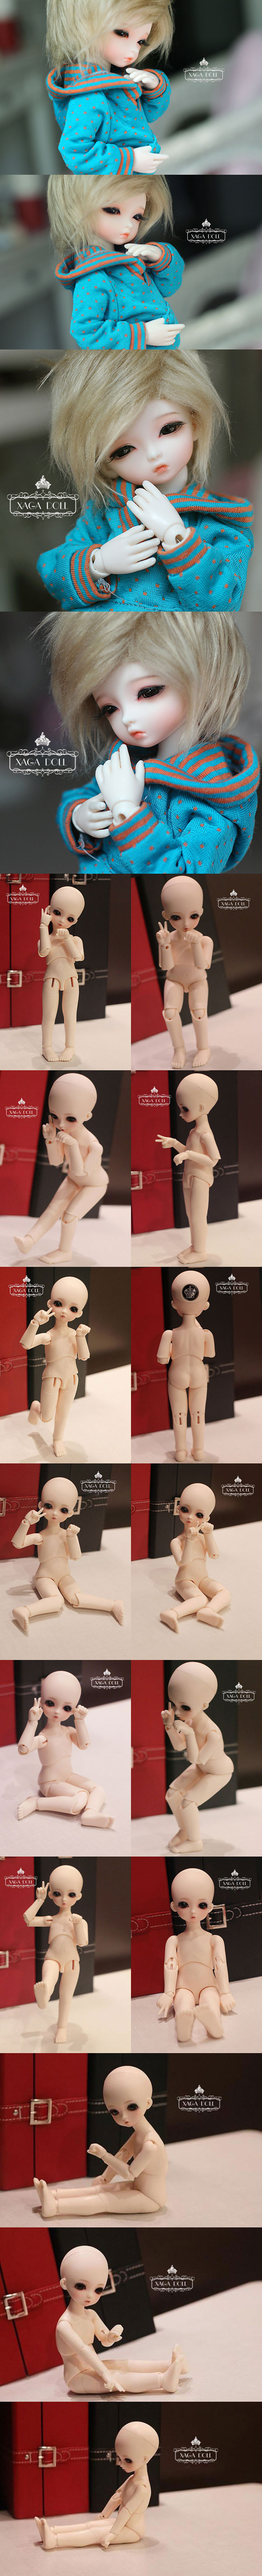 BJD kiki-2 17.5cm Ball-Jointed Doll